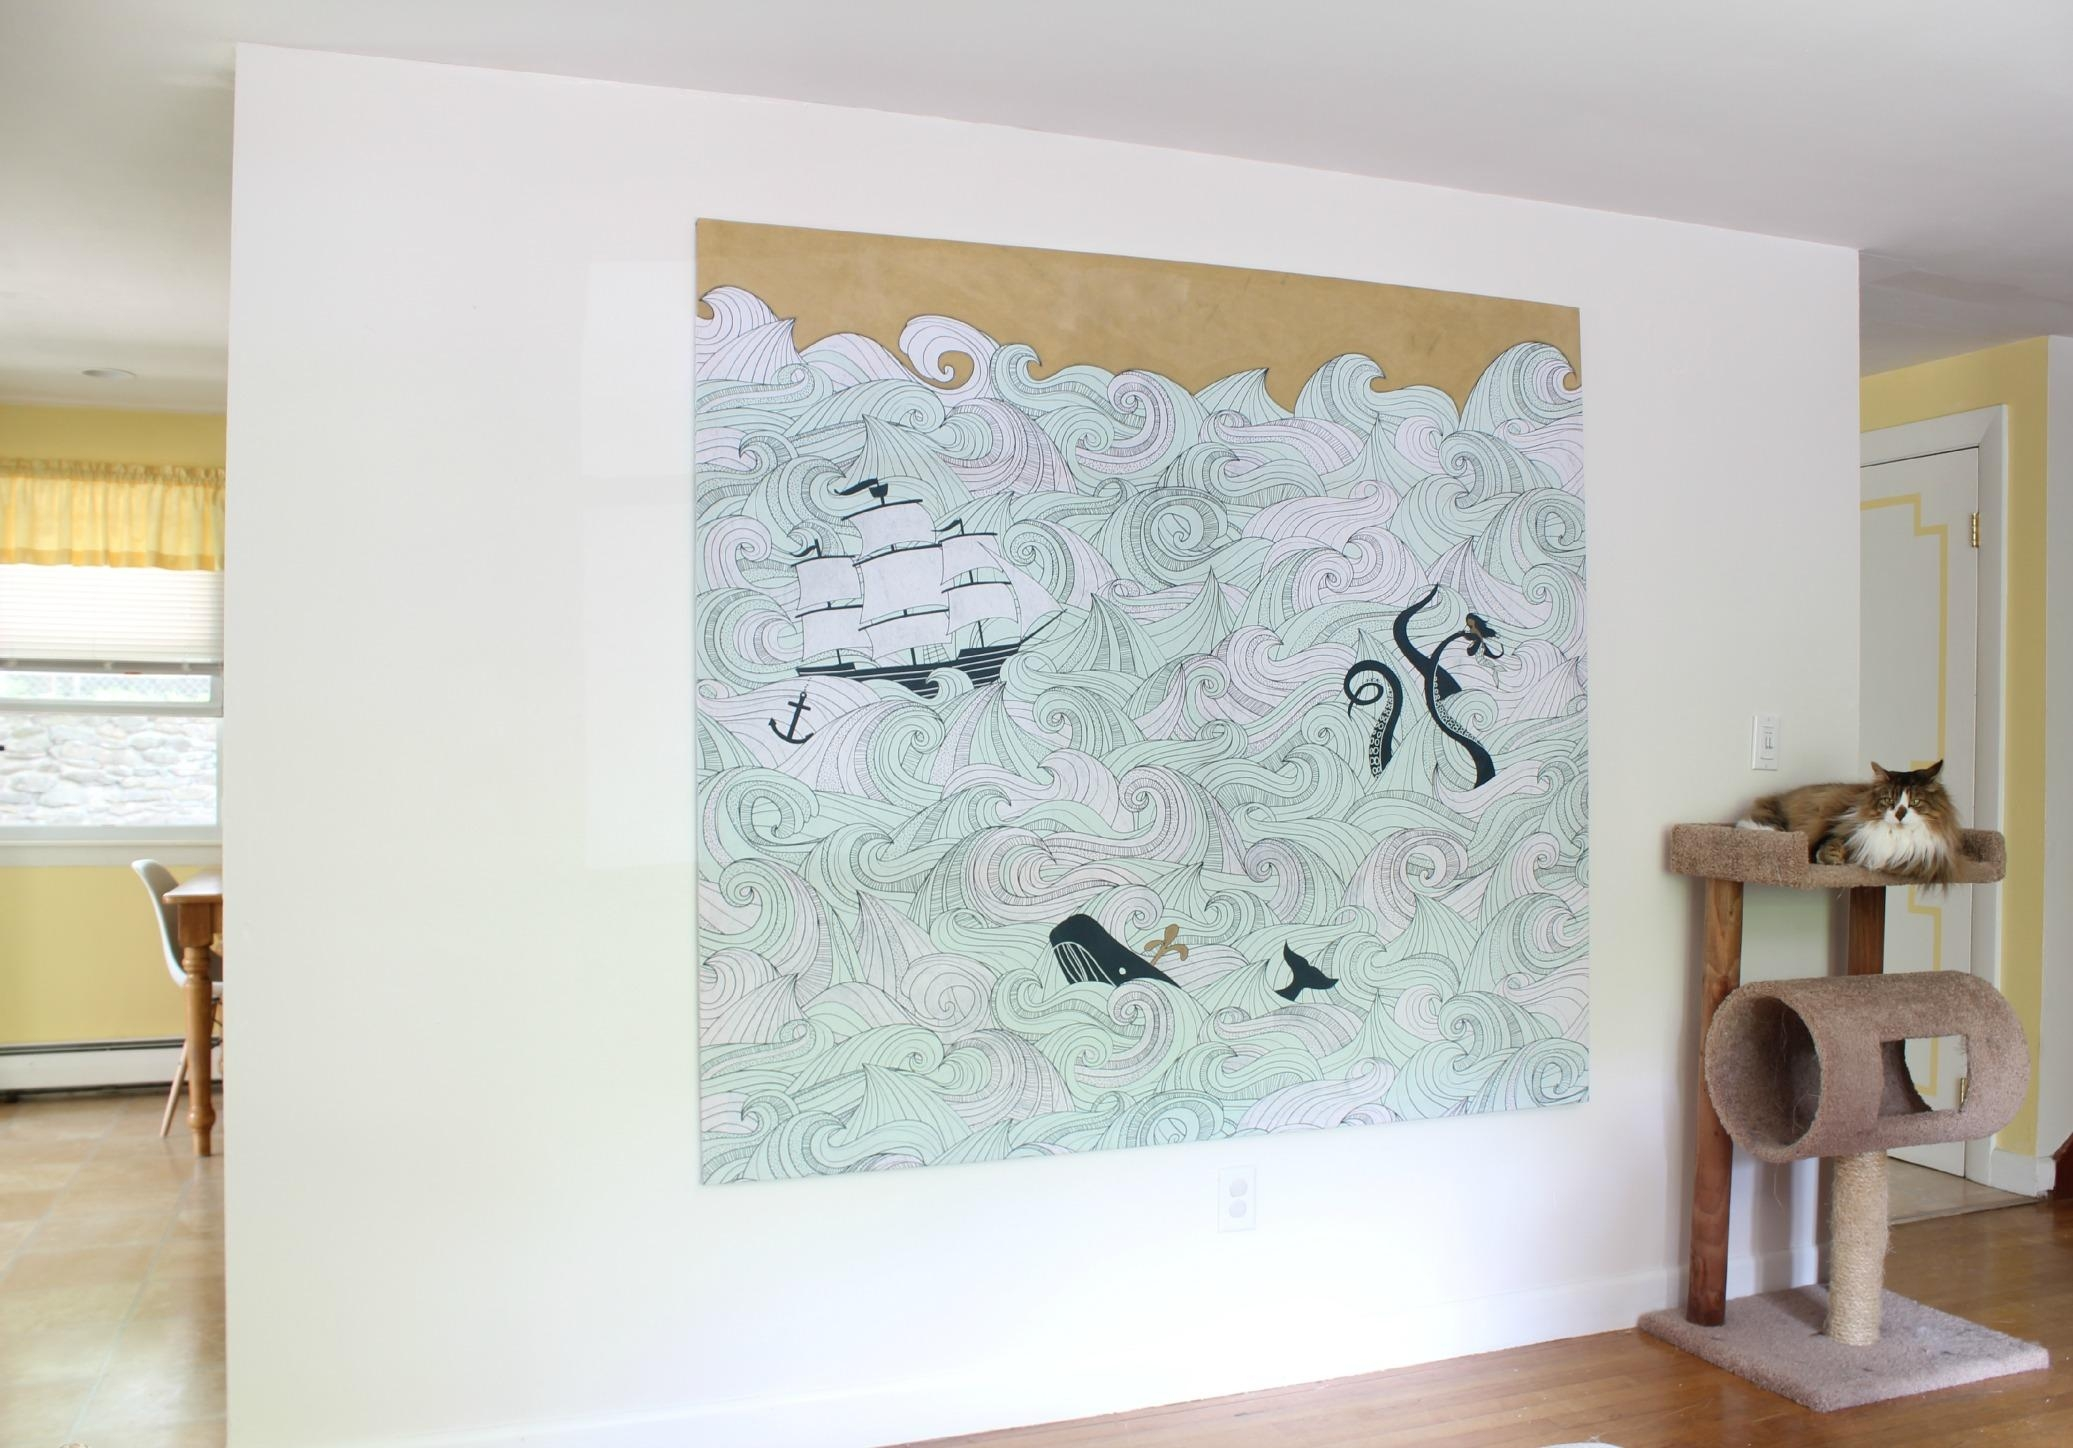 Diy Stretched Fabric Canvas (With A Shower Curtain!) | Stephanie Within Stretched Fabric Wall Art (View 2 of 20)